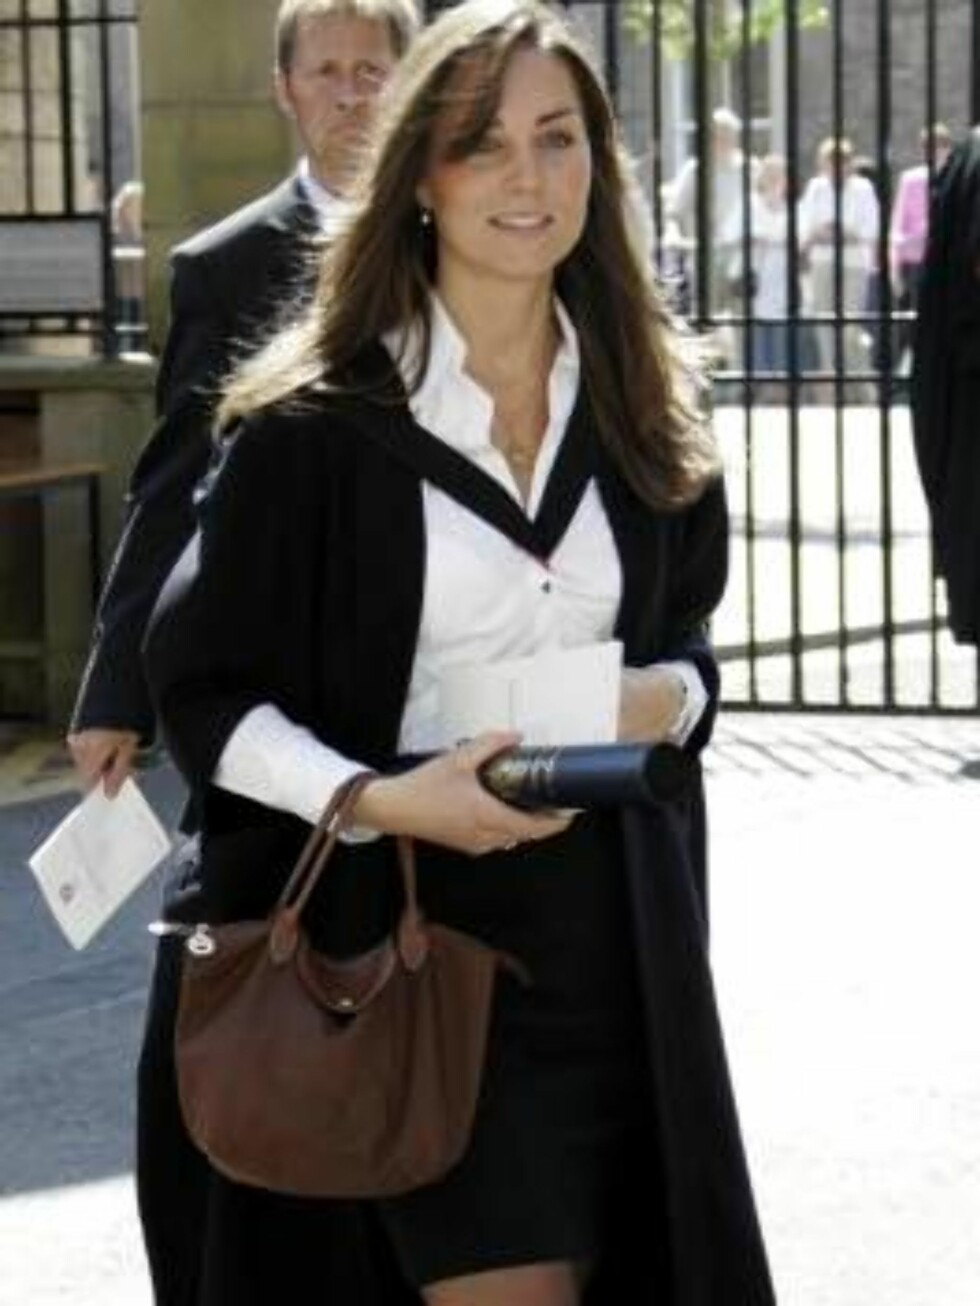 Britain's Prince William's girlfriend Kate Middleton leaves after attending their university graduation ceremony at St. Andrews University in St. Andrews, Scotland, Thursday June 23, 2005. William, the son of Prince Charles and the late Princess Diana, re Foto: AP